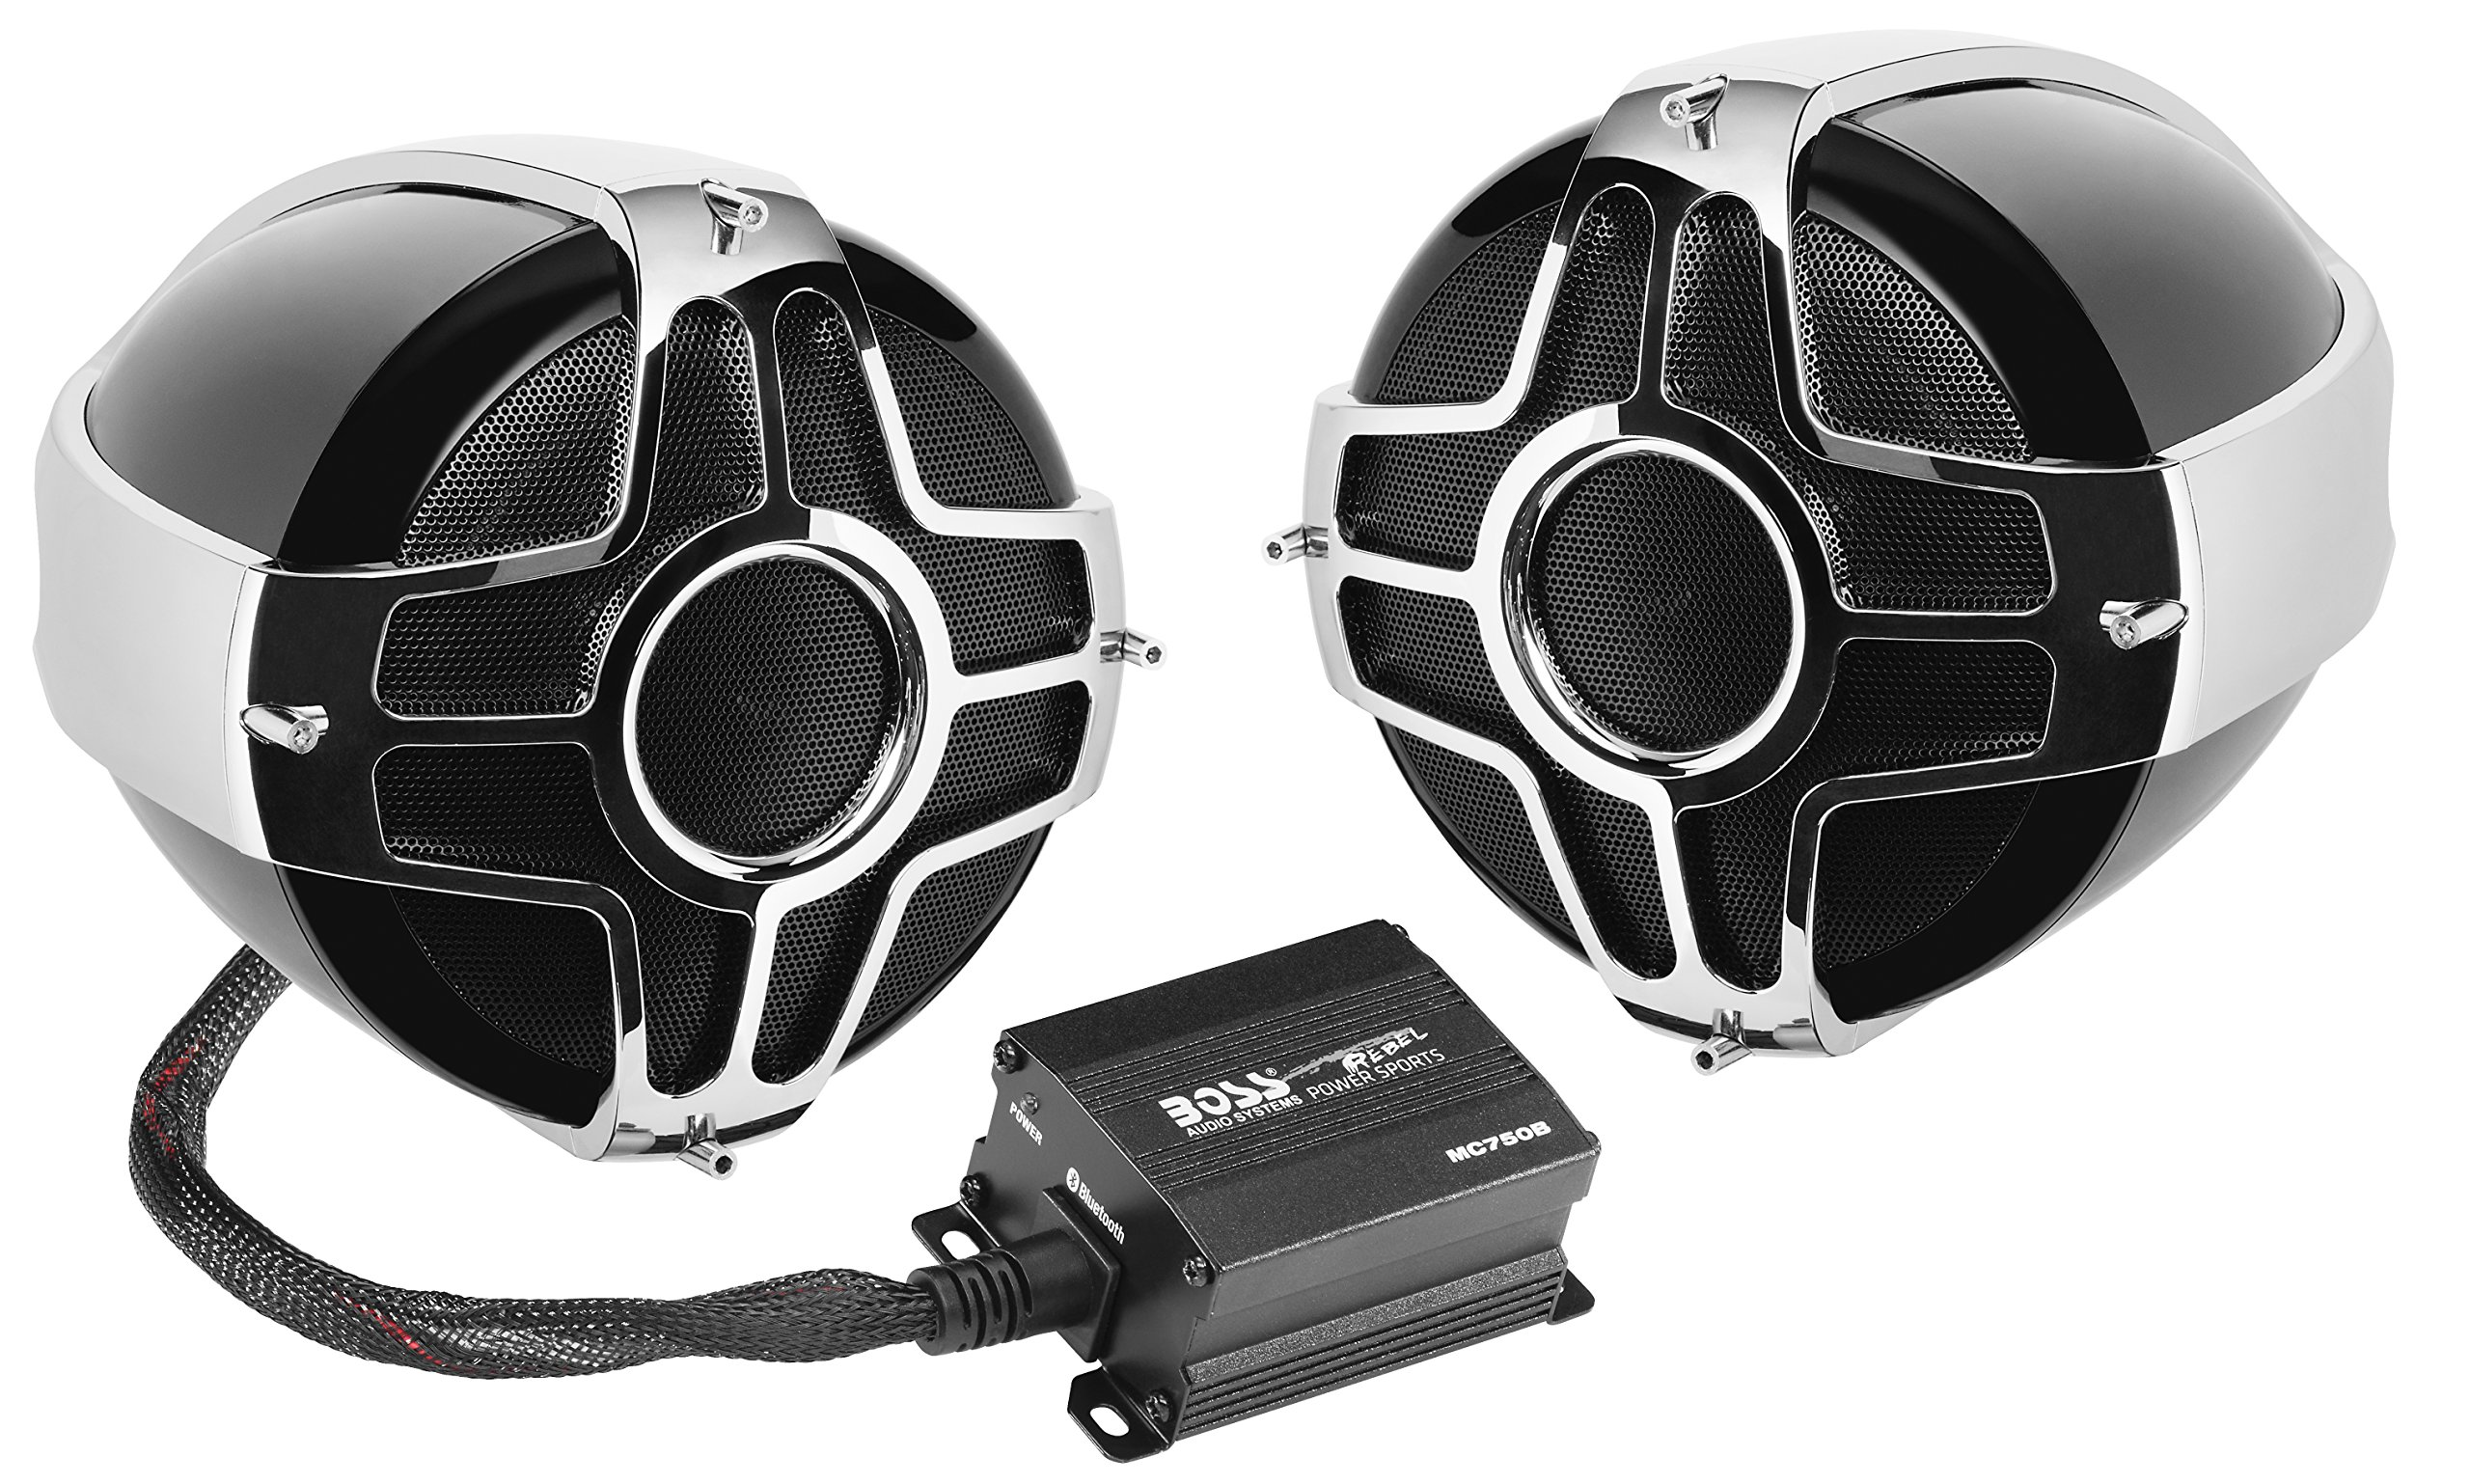 BOSS Audio MC750B Bluetooth, Weatherproof Speaker And Amplifier Sound System, Two 4 Inch Speakers, Bluetooth Amplifier, Inline Volume Control, Ideal For Motorcycles/ATV and 12 Volt Applications